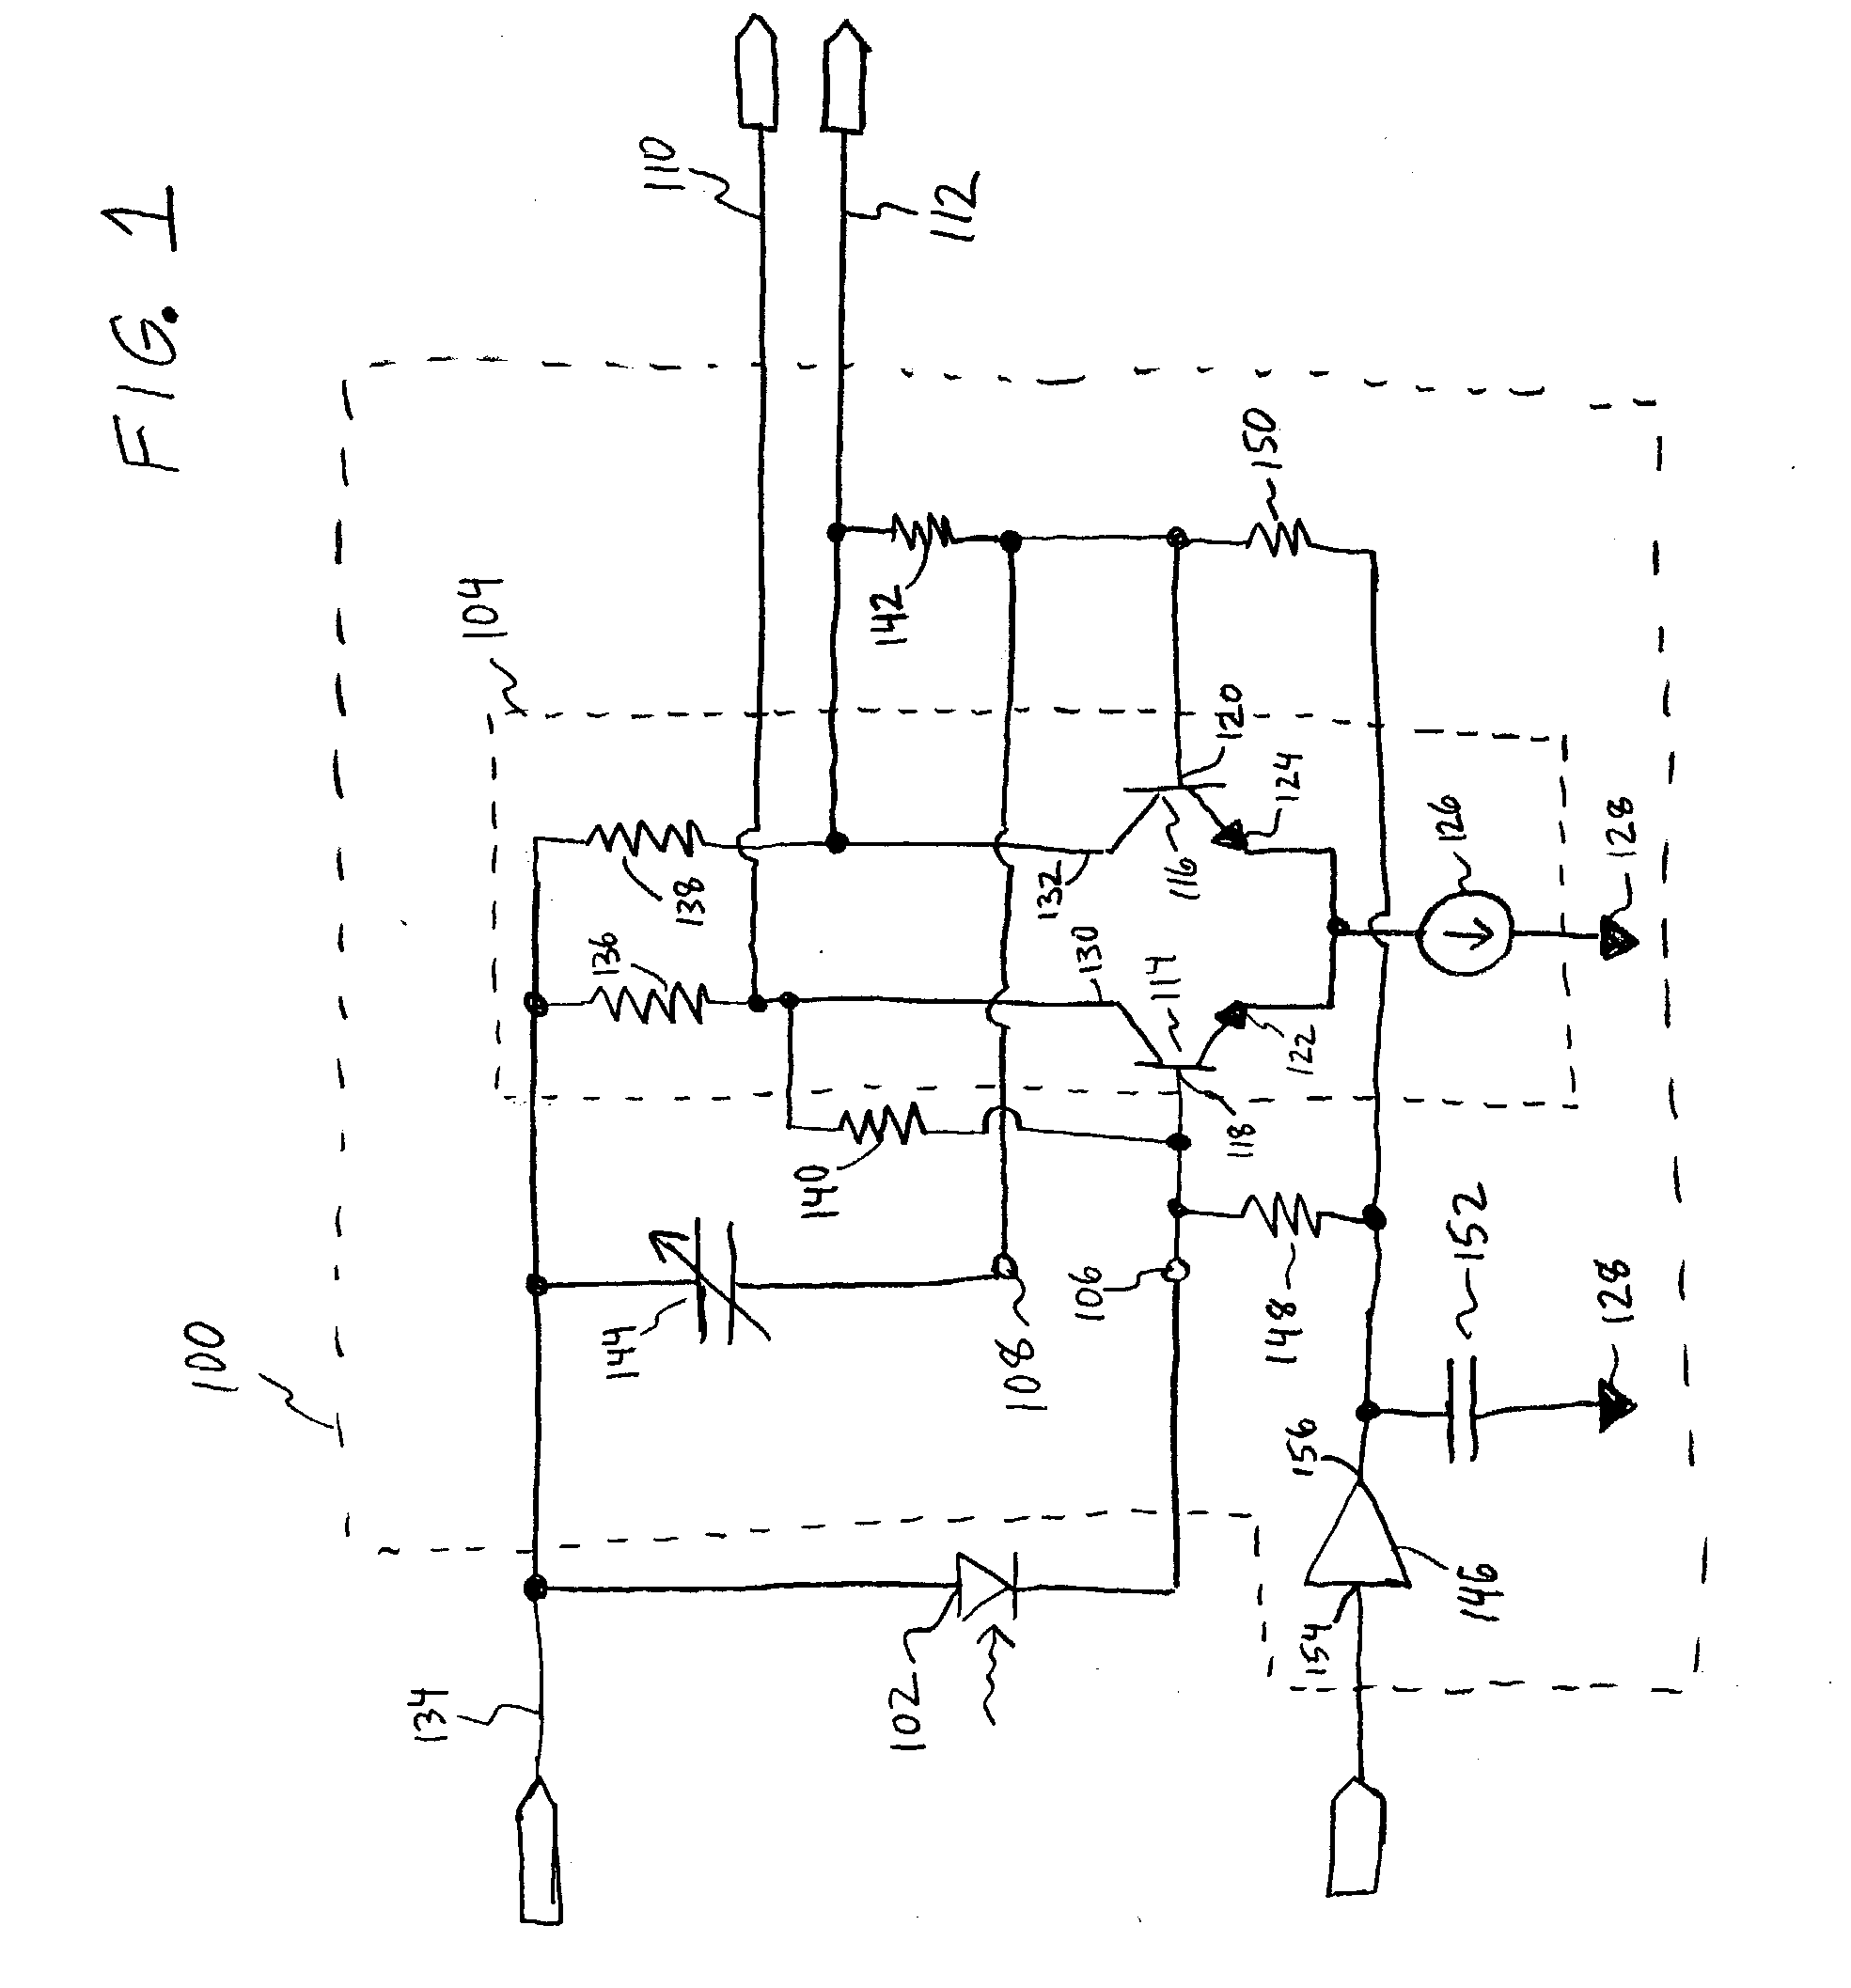 Transimpedance Patent Inphi Giftsforsubs Us6359517 Photodiode Circuit Google Patents